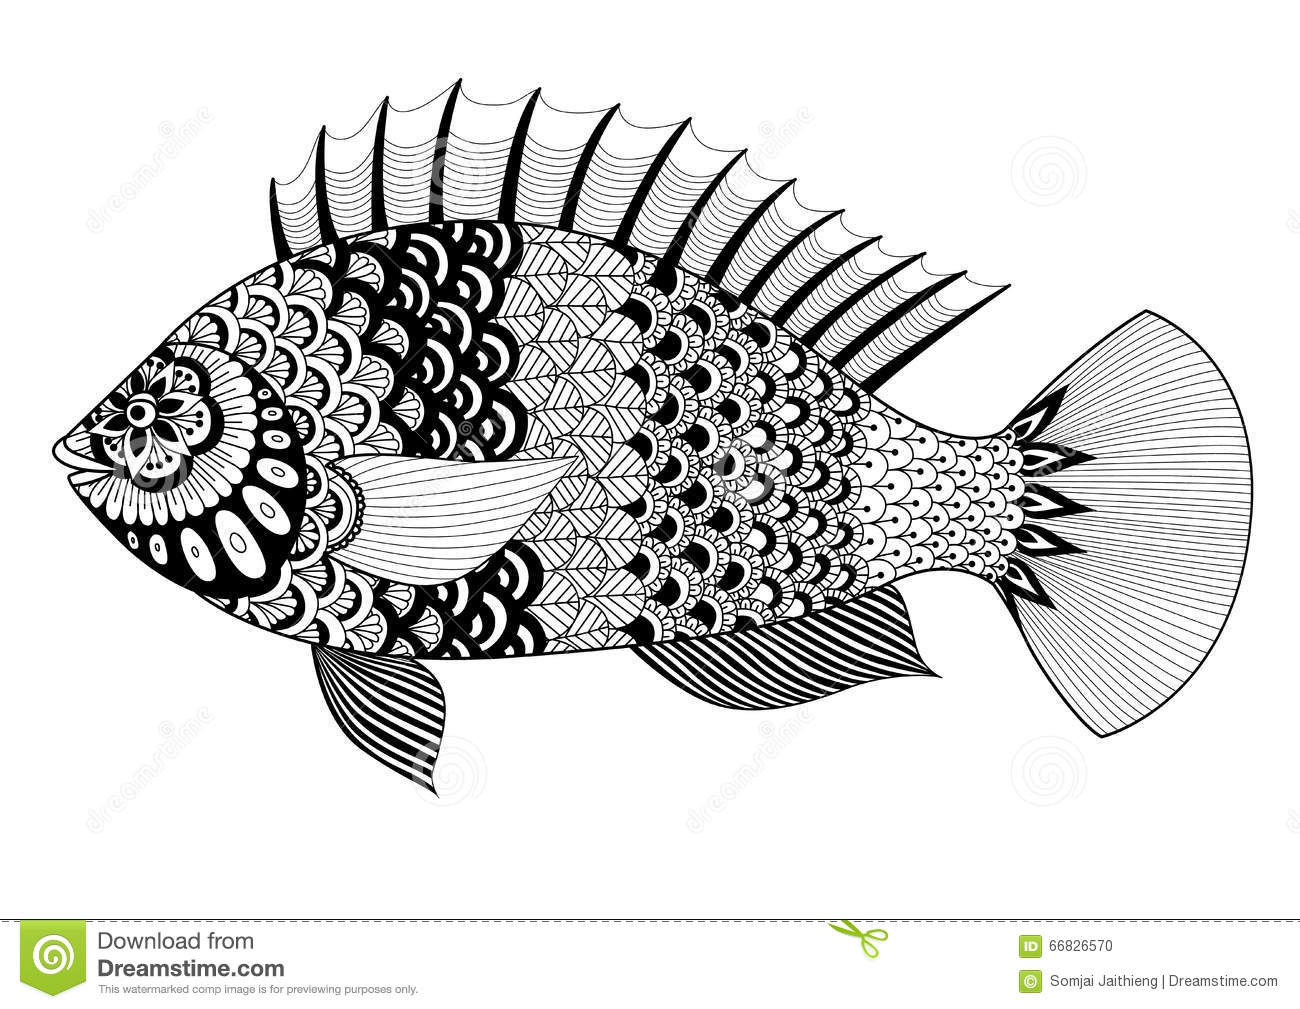 Fish Line Art Design For Coloring Book For Adult, Tattoo, T Shirt.